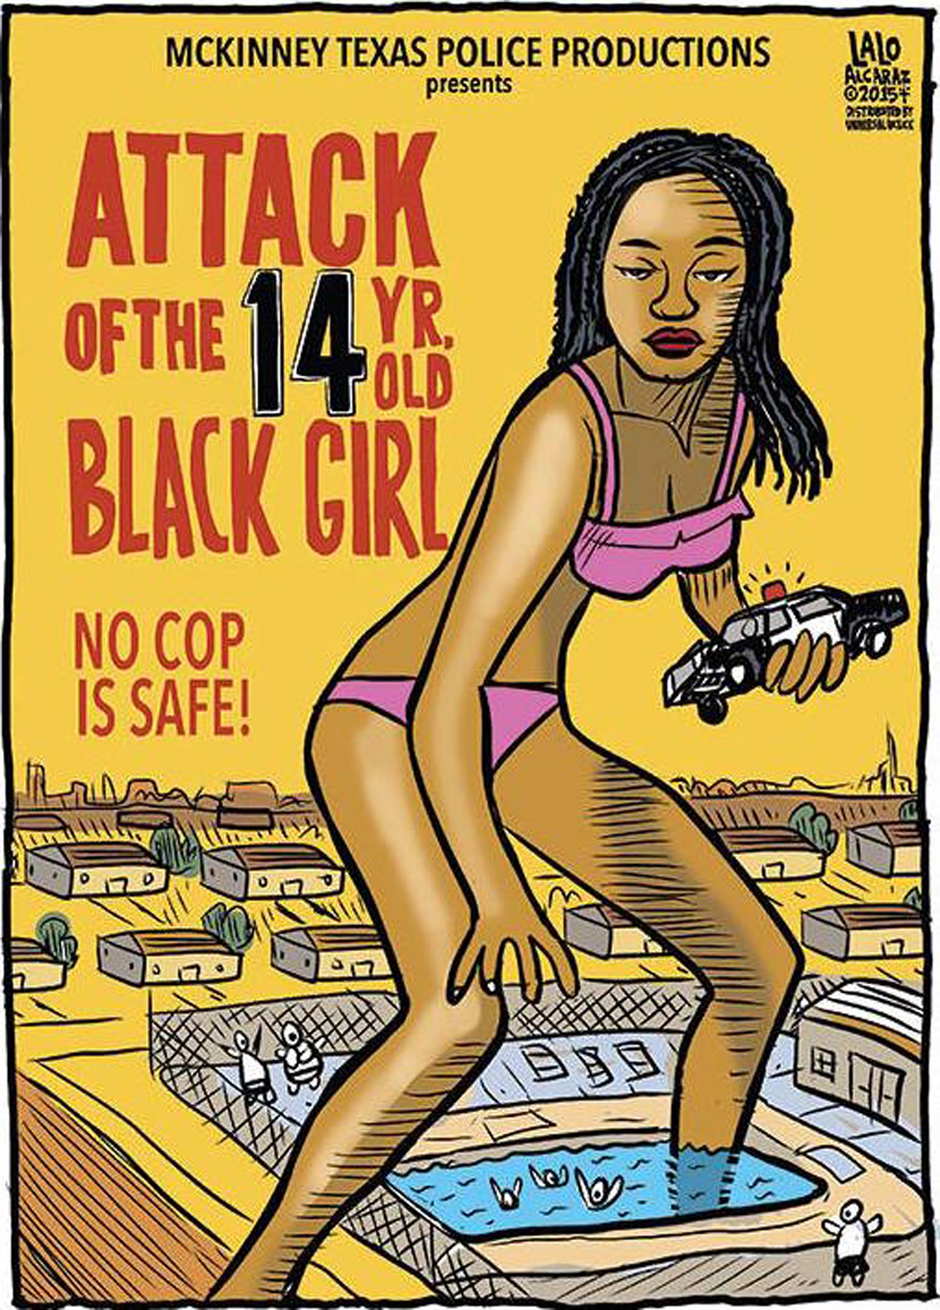 Coming Soon: Attack of the 14-Year-Old Black Girl by Lalo Alcaraz